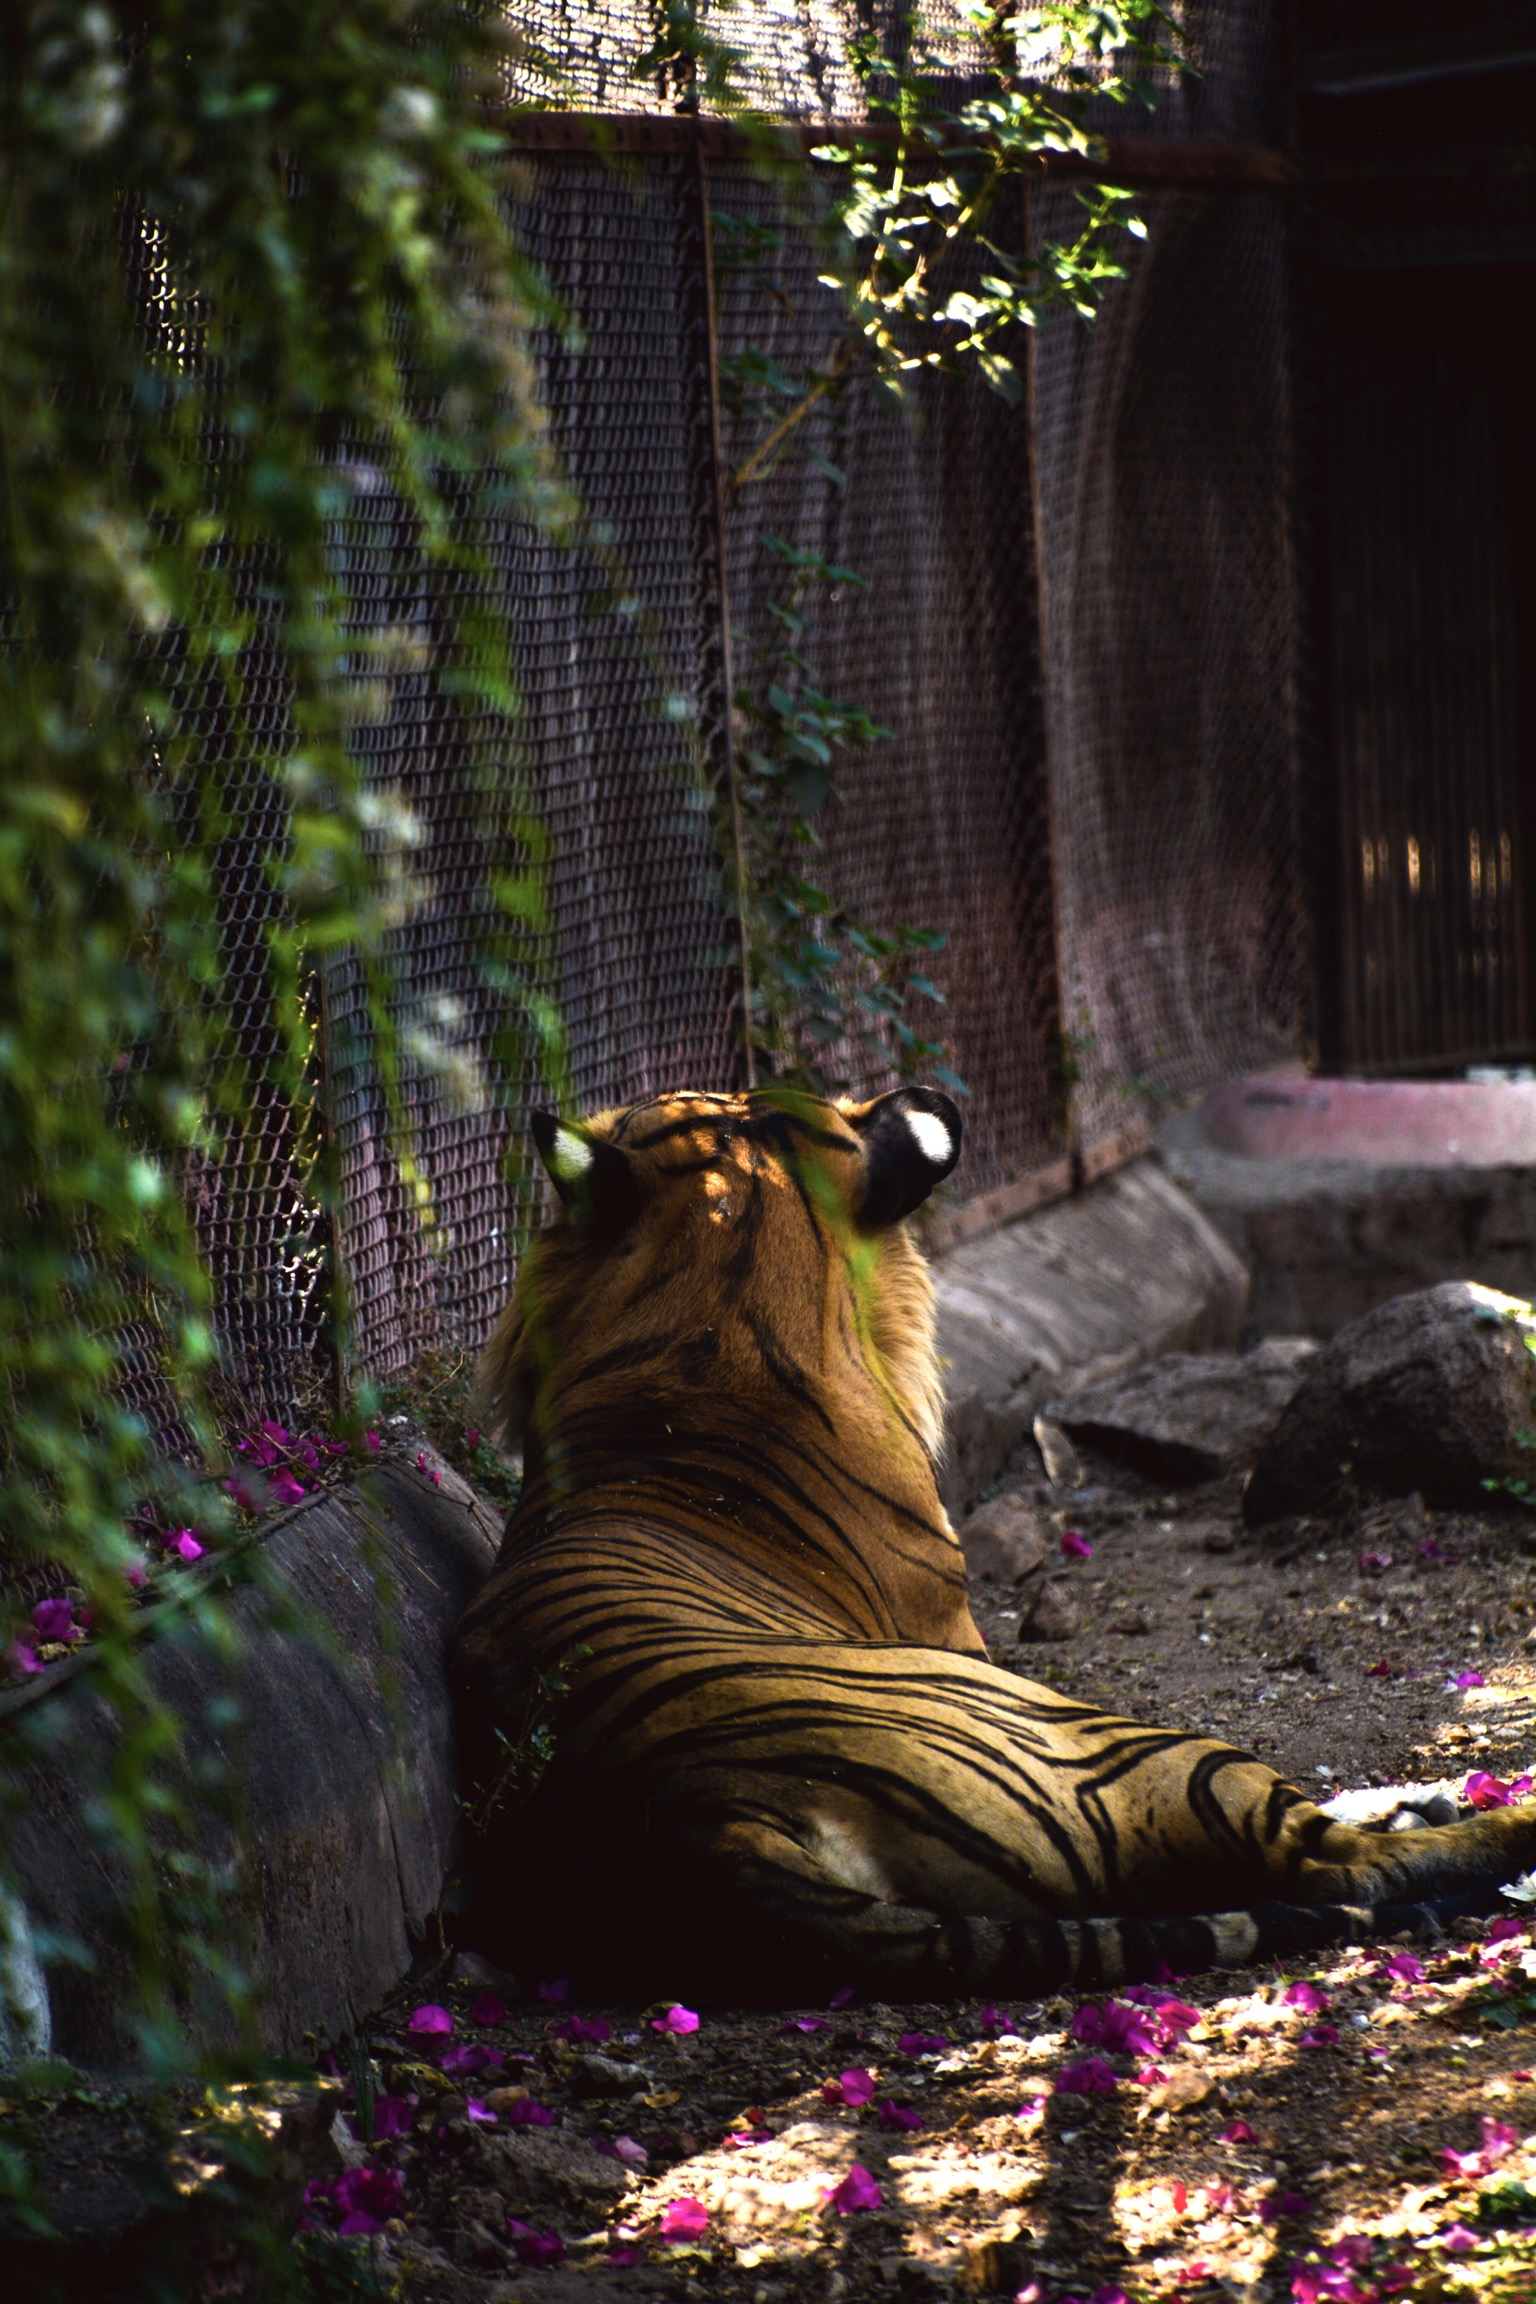 Tiger sitting near the cage